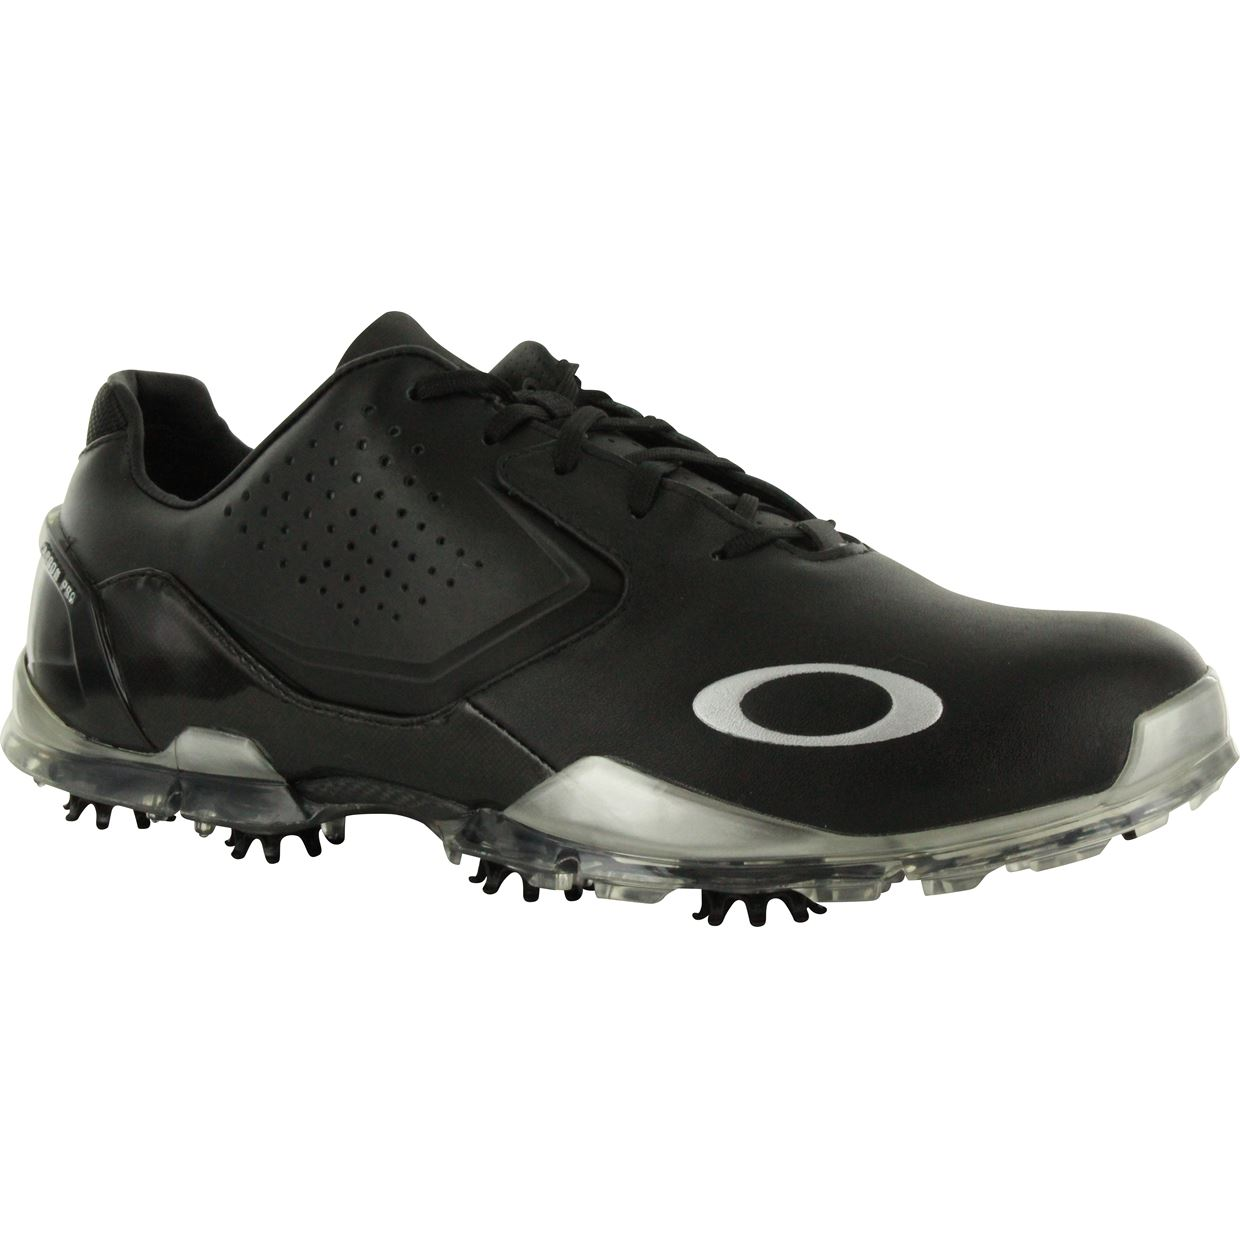 oakley carbon pro golf shoe  eBay